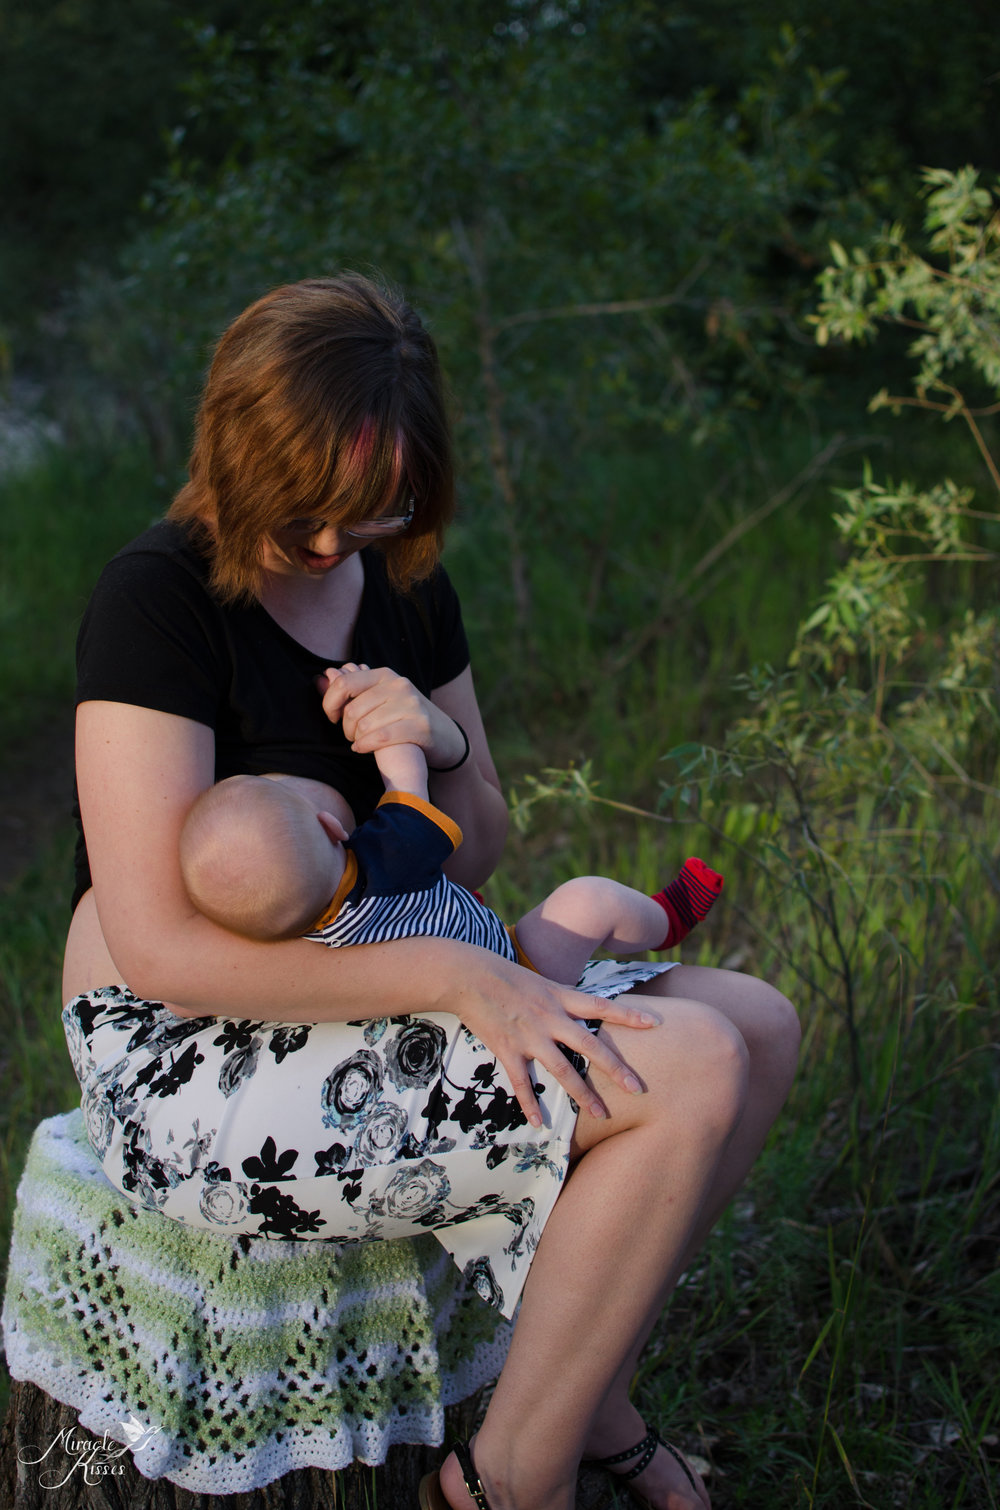 breastfeeding goals, nurture children, 31 days 31 stories